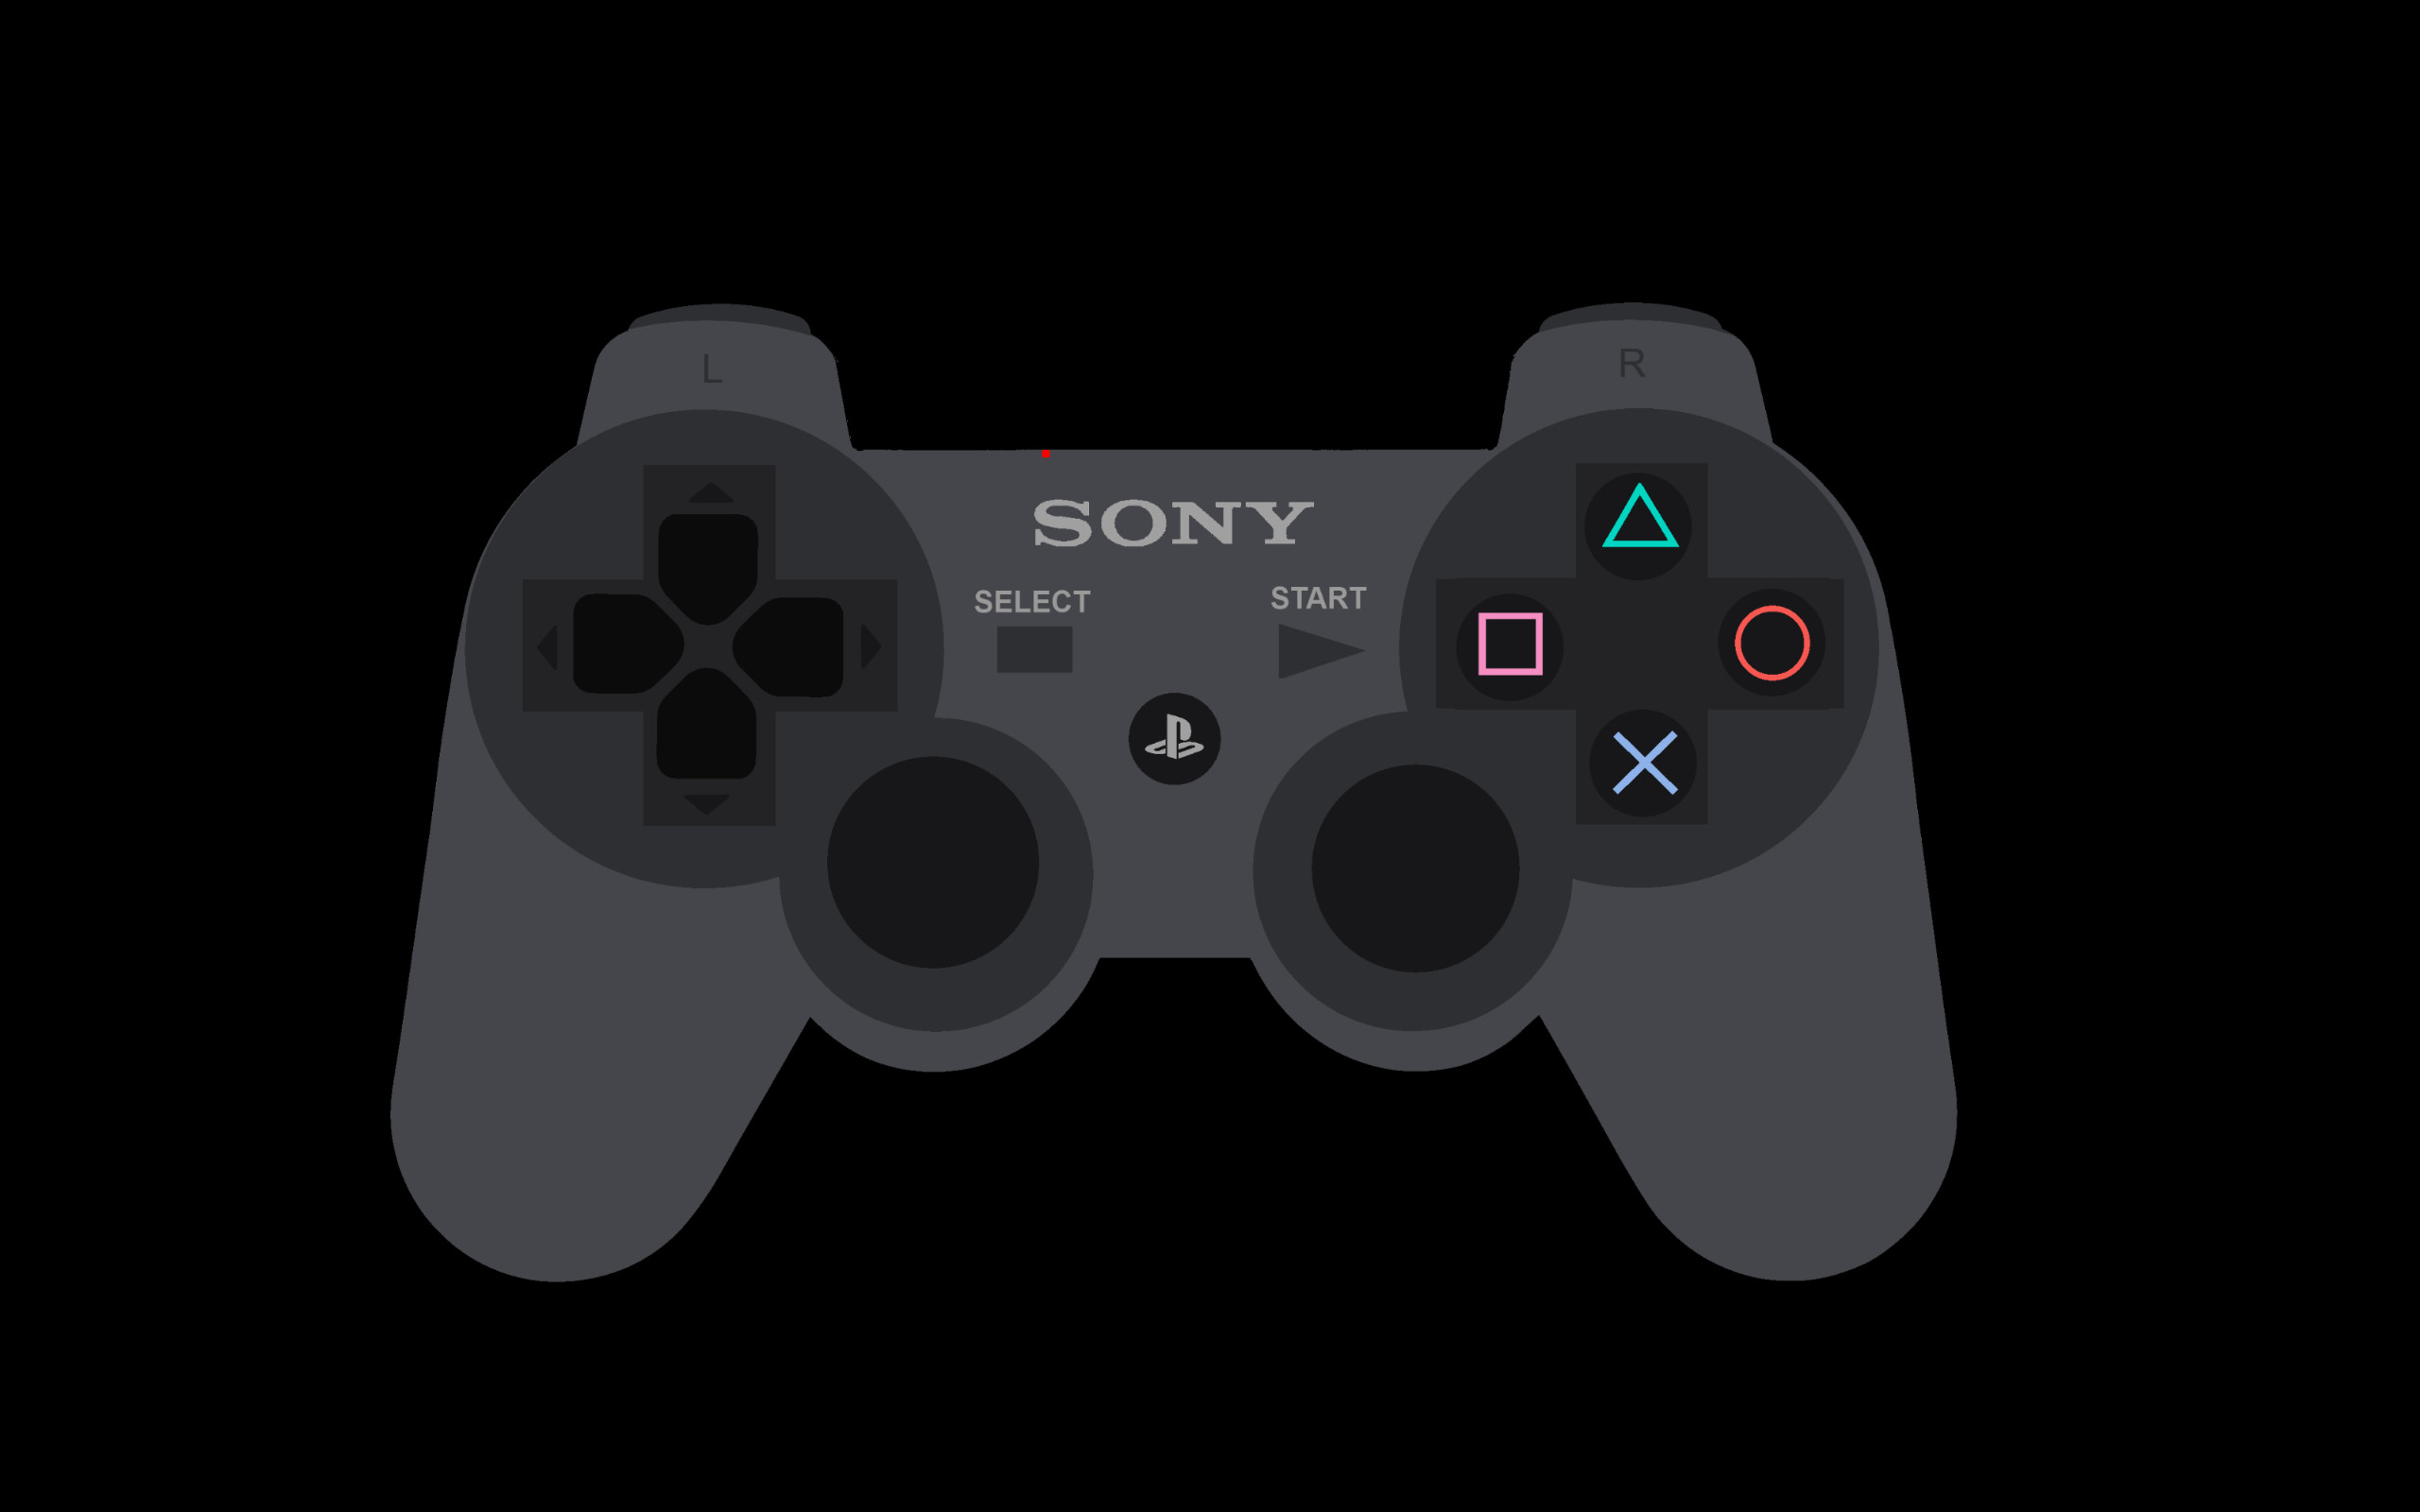 Playstation 3 wallpapers 1080p 61 images 1920x1080 ps3 wallpapers for android voltagebd Gallery